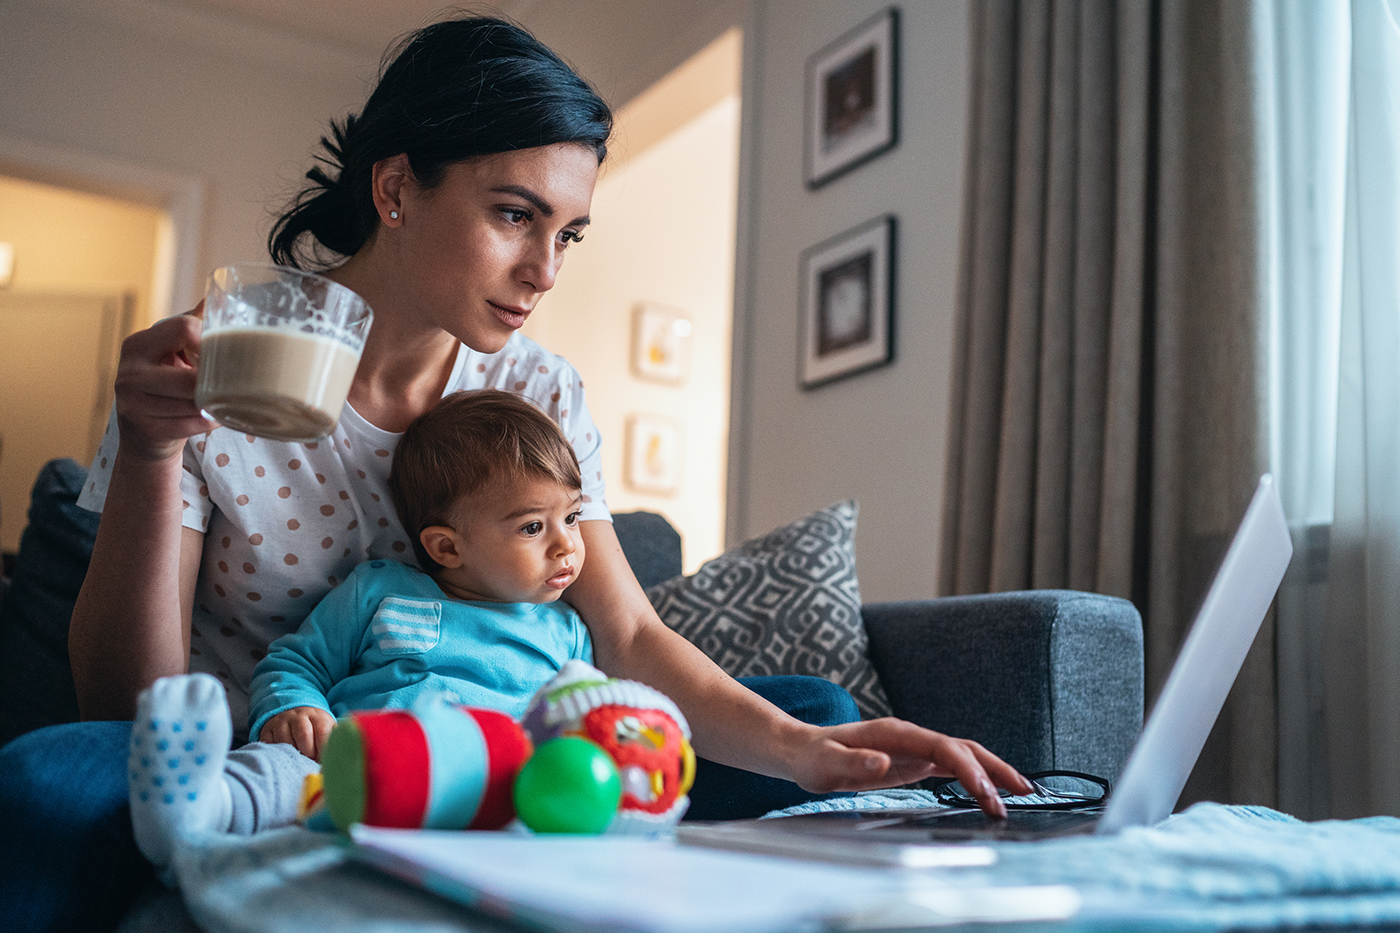 woman with baby on lap, working on laptop